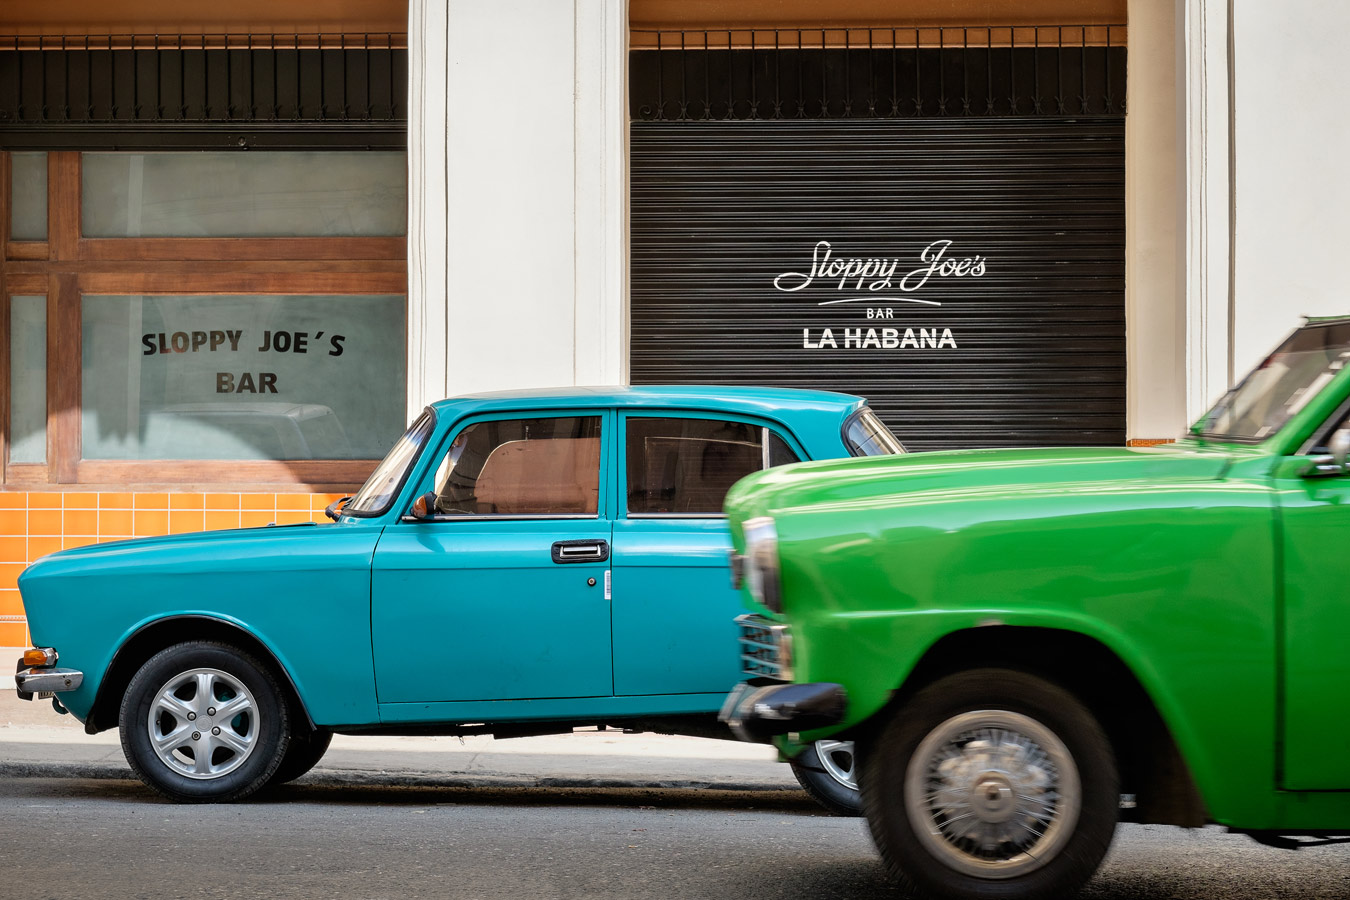 Cuba travel photography by Sharon Blance, Melbourne photographer